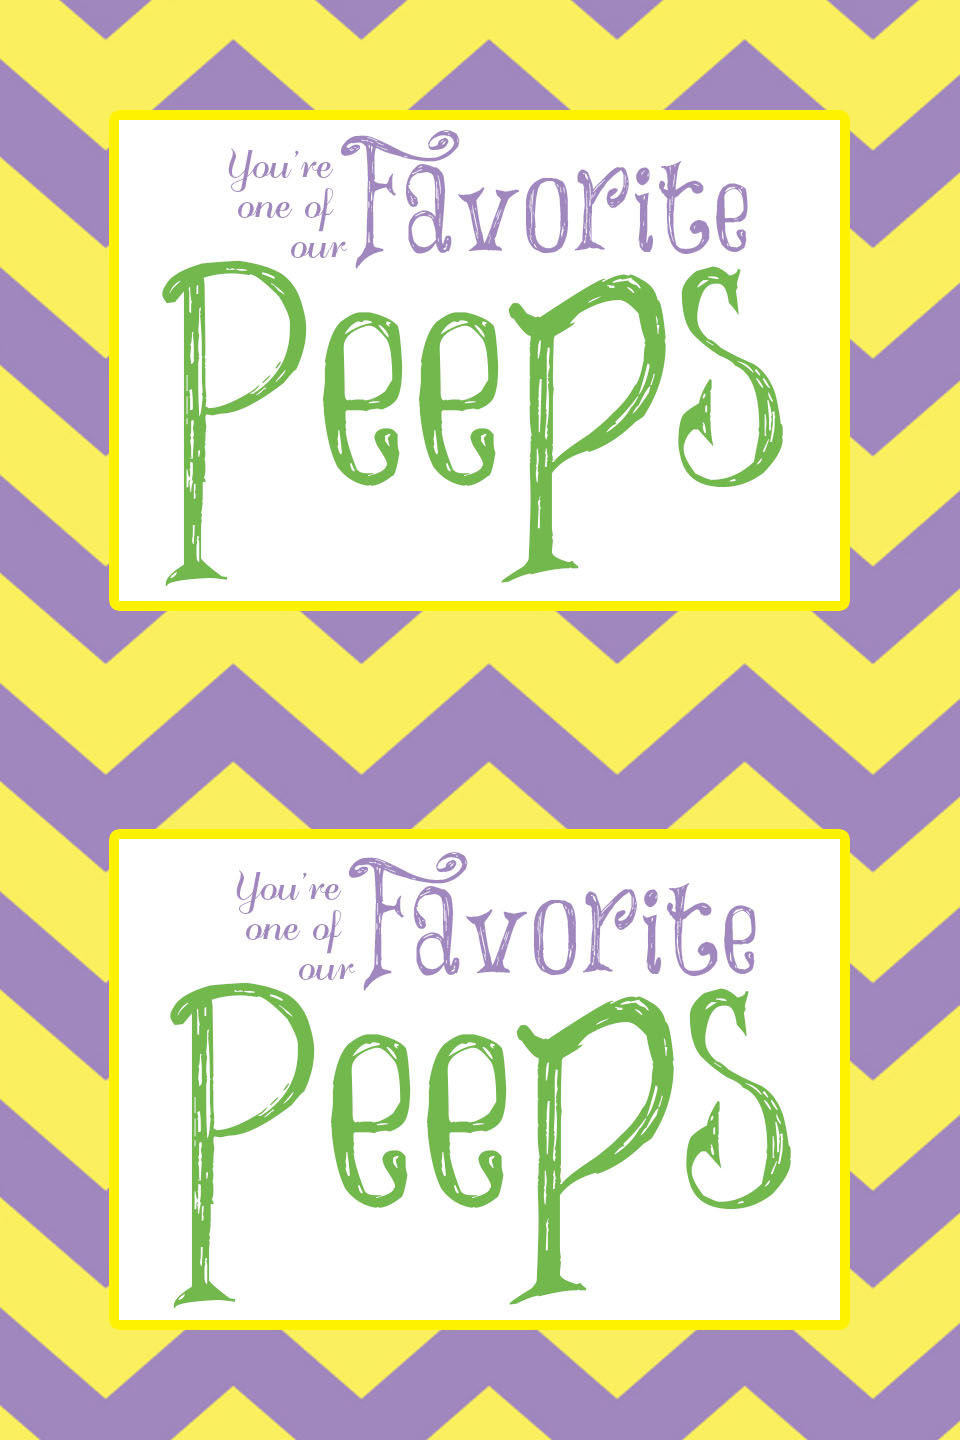 Free Printable You Re One Of Our Favorite Peeps Visiting Teaching Hand Out Tips From A Typical Mom